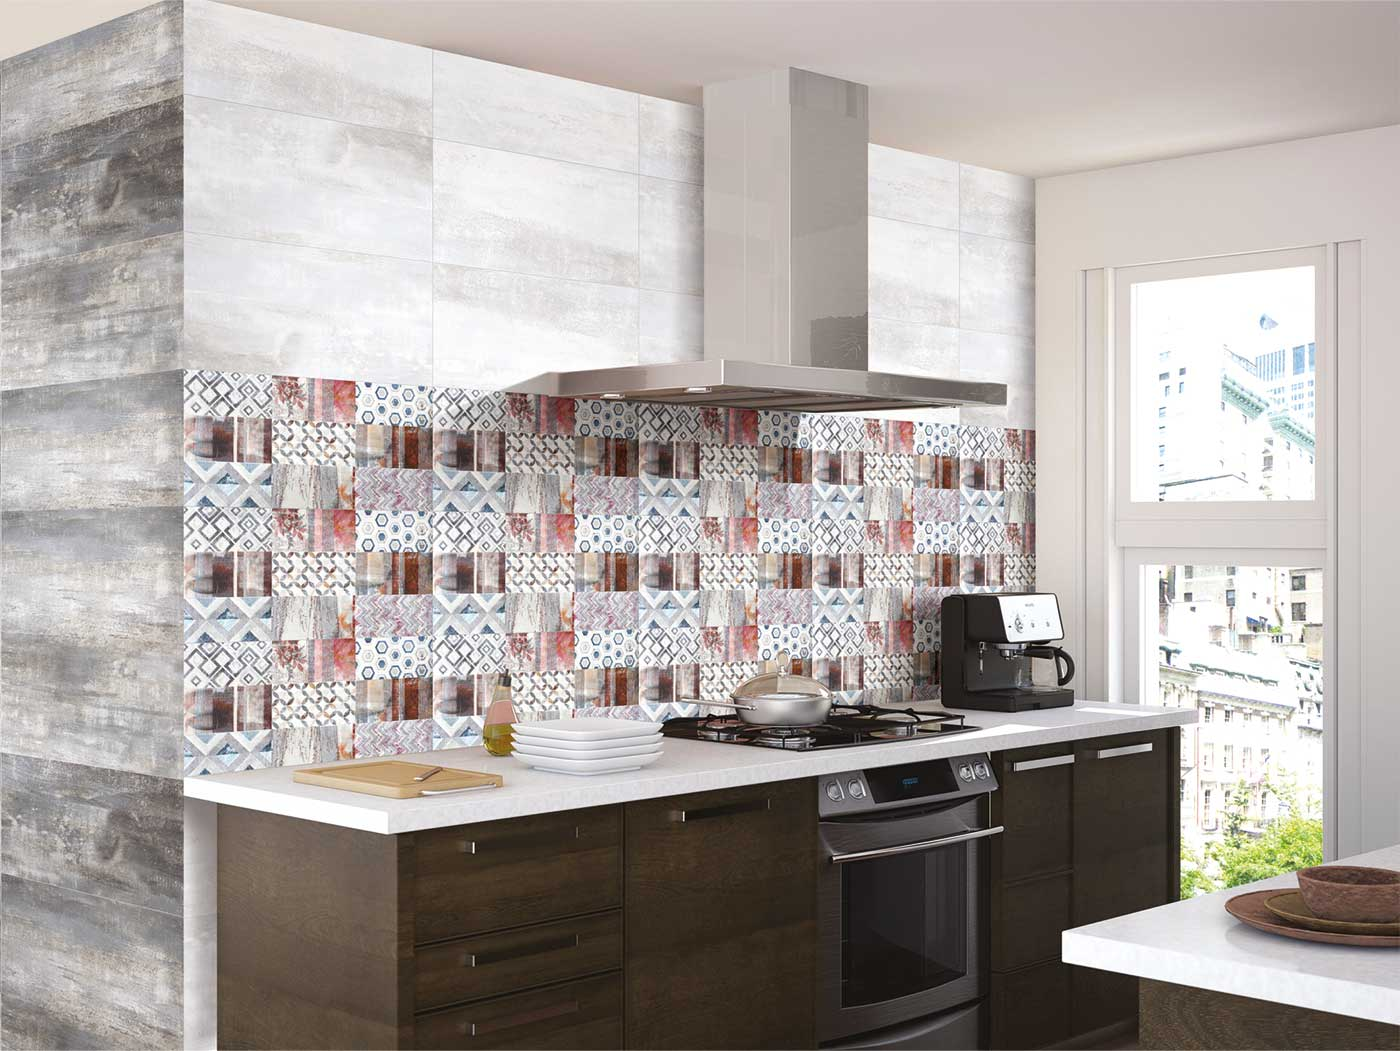 Kitchen Tiles Design Photos In India Metallic Kitchen Tiles In India Kajaria Ceramics Limited